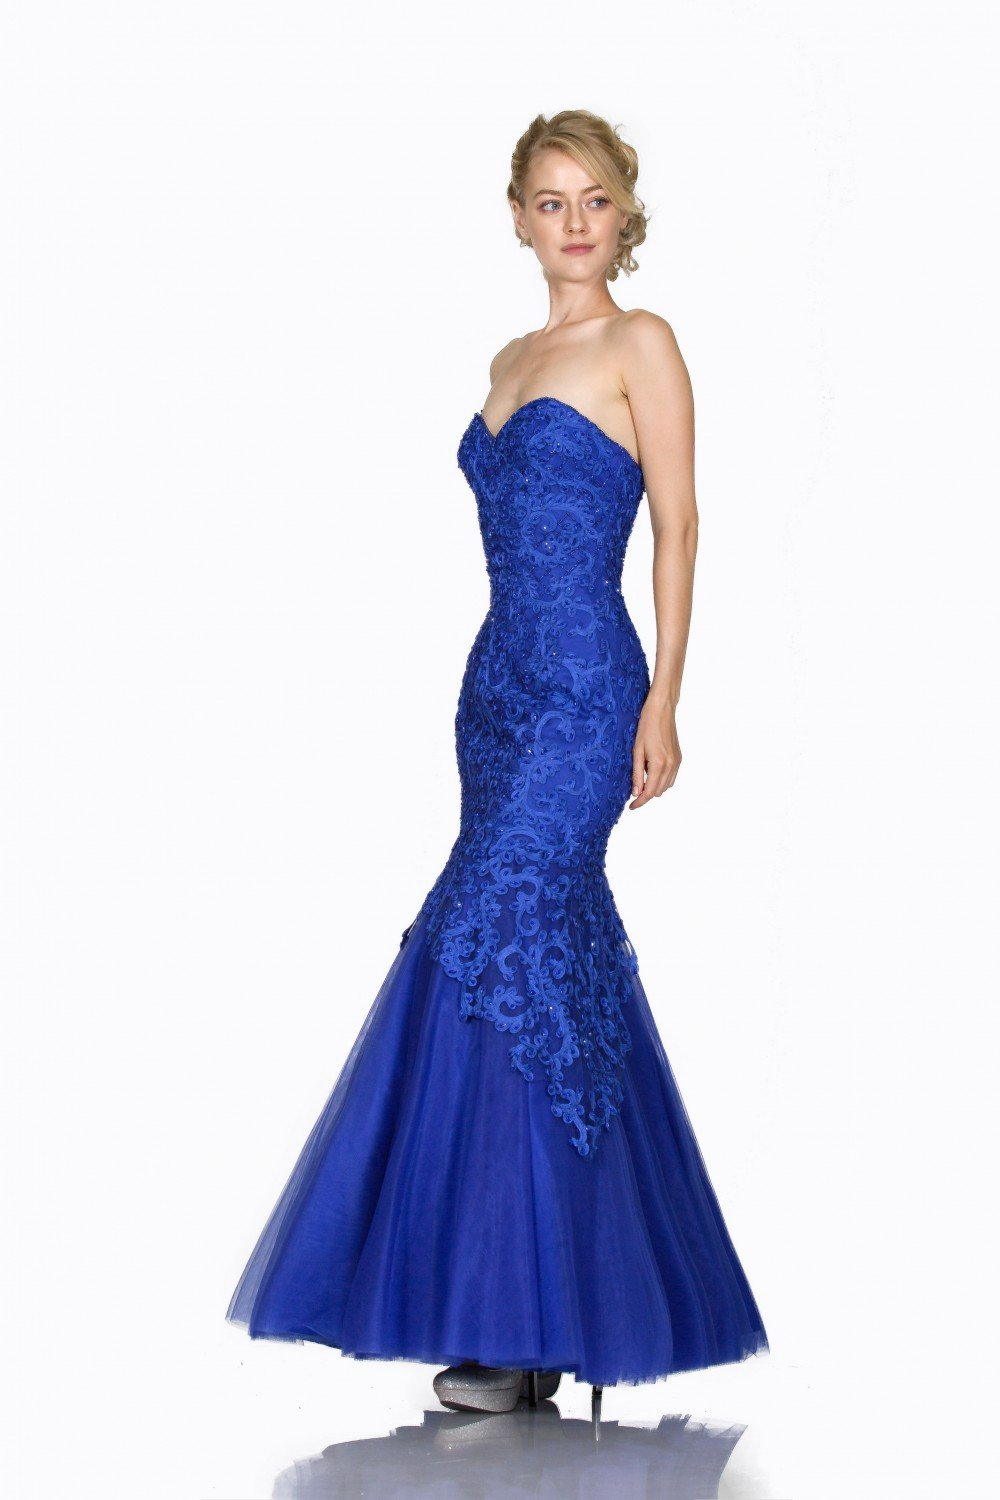 Cinderella Divine - KC1701SC Sweetheart Bodice Appliqued Mermaid Dress